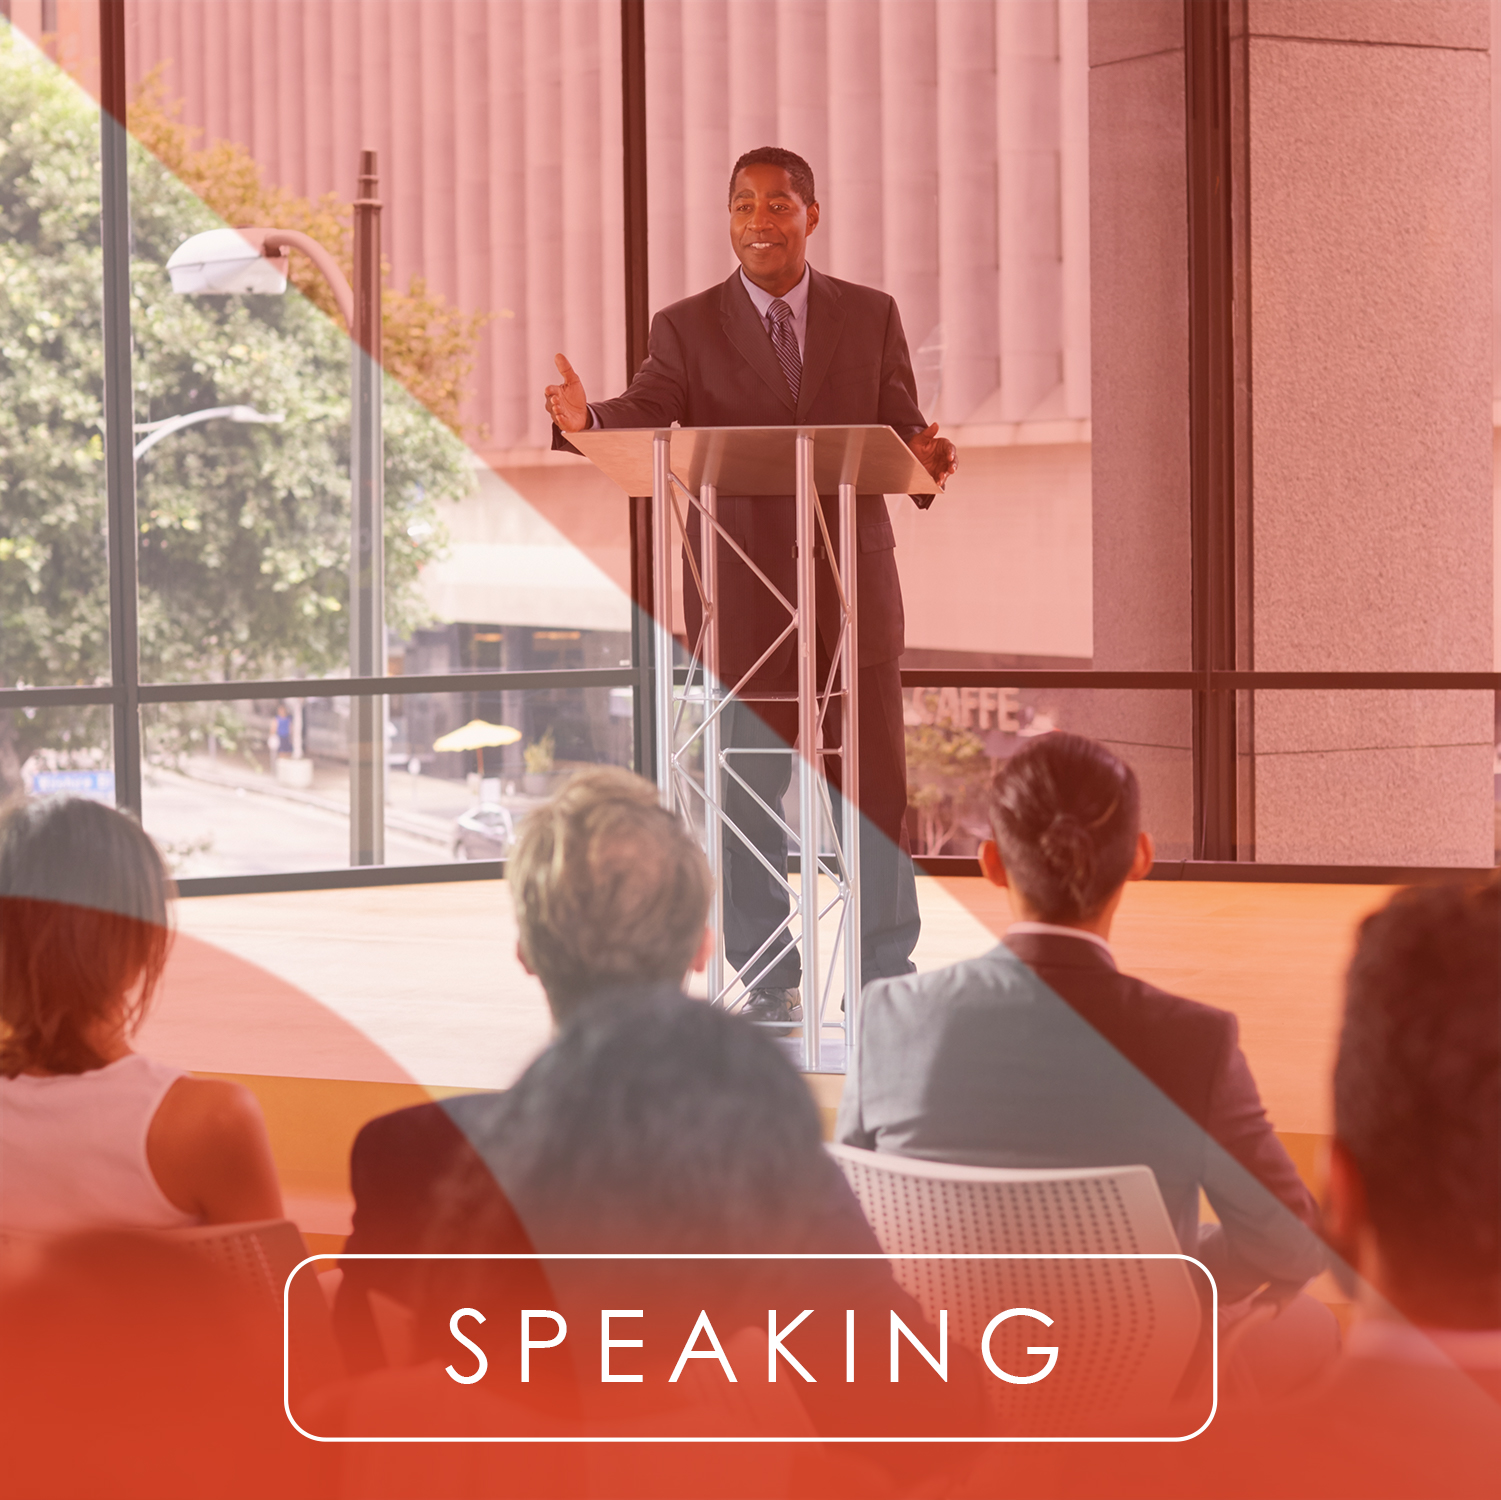 - Terry continues to travel the country doing what he loves - Speaking. He continues to inspire, teach, and motivate through these keynote speaking engagements. Let Terry inspire your organization at your next event.BOOK TERRY